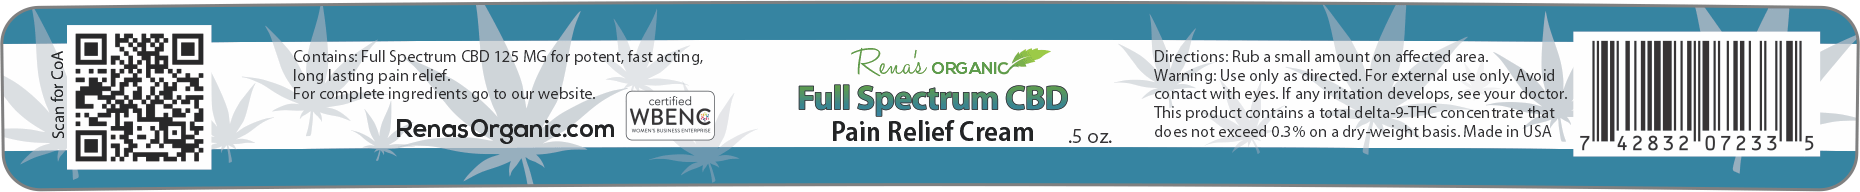 Rena's Organics also offers the best cbd cream on the market - cbd pain cream, cbd cream for back pain, cbd pain relief cream, cbd lotion for pain and more